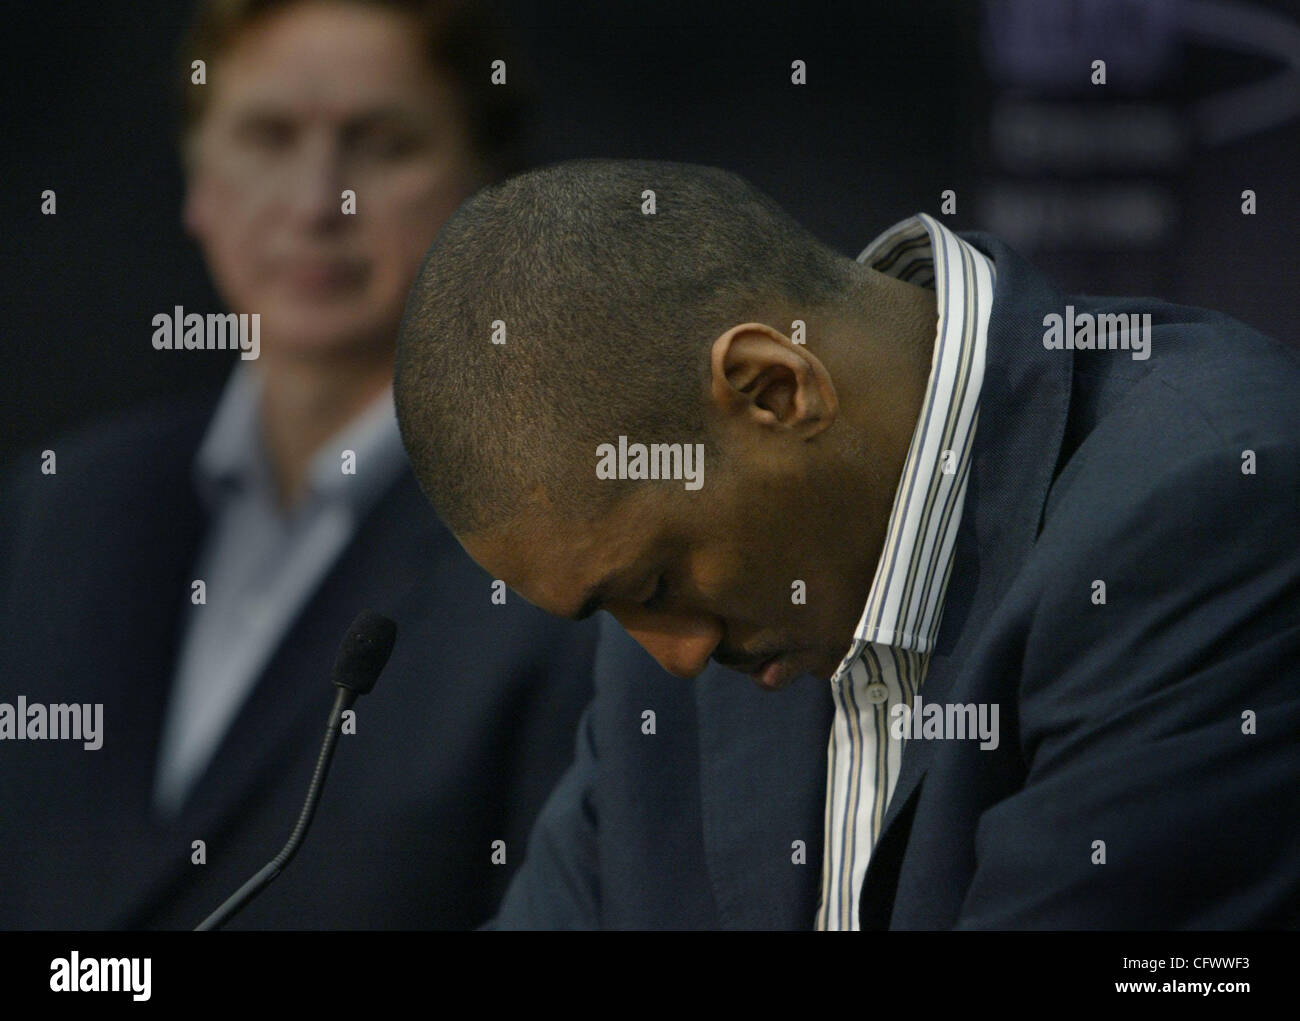 As Kings President Geoff Petrie in the background looks on, Kings player Ron Artest takes a short break and gets - Stock Image